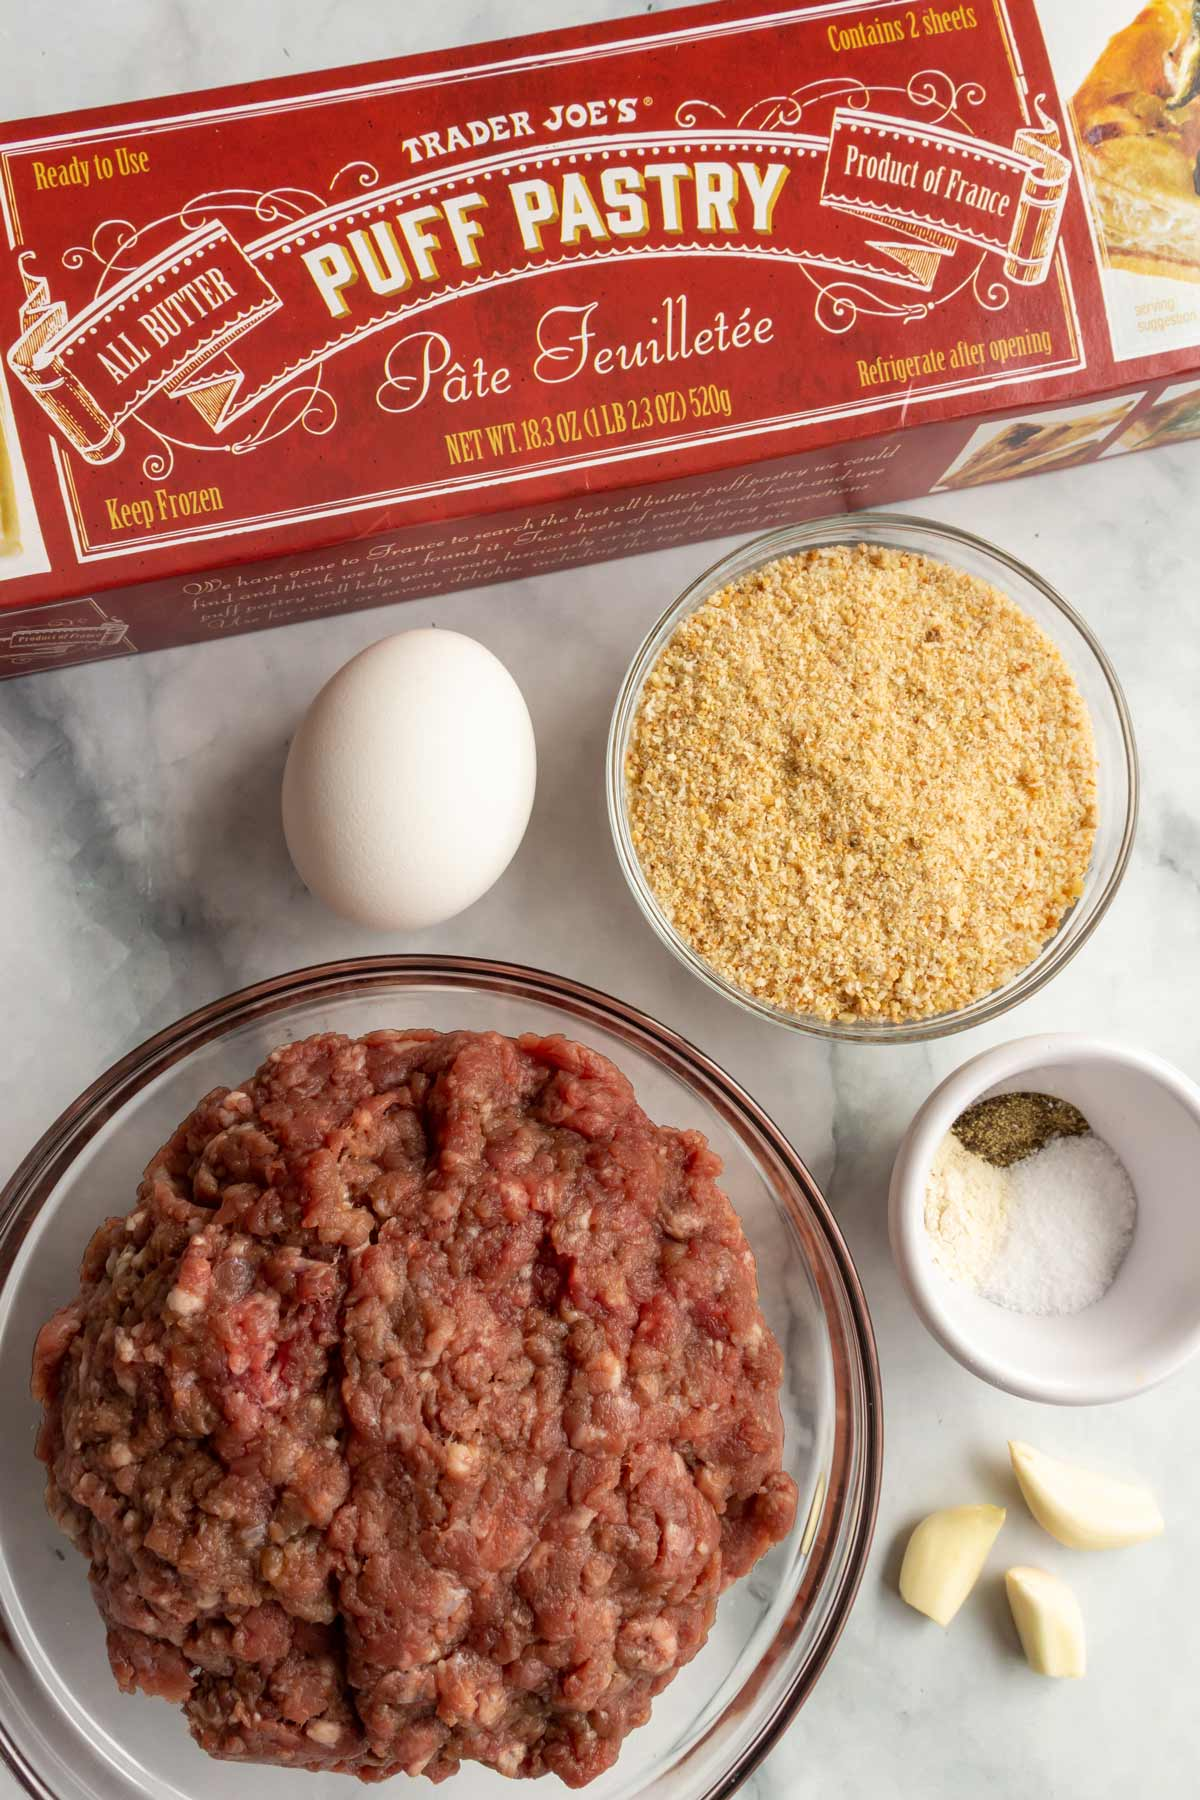 A box of puff pastry, an egg, bowls of breadcrumbs, spices, and ground beef.